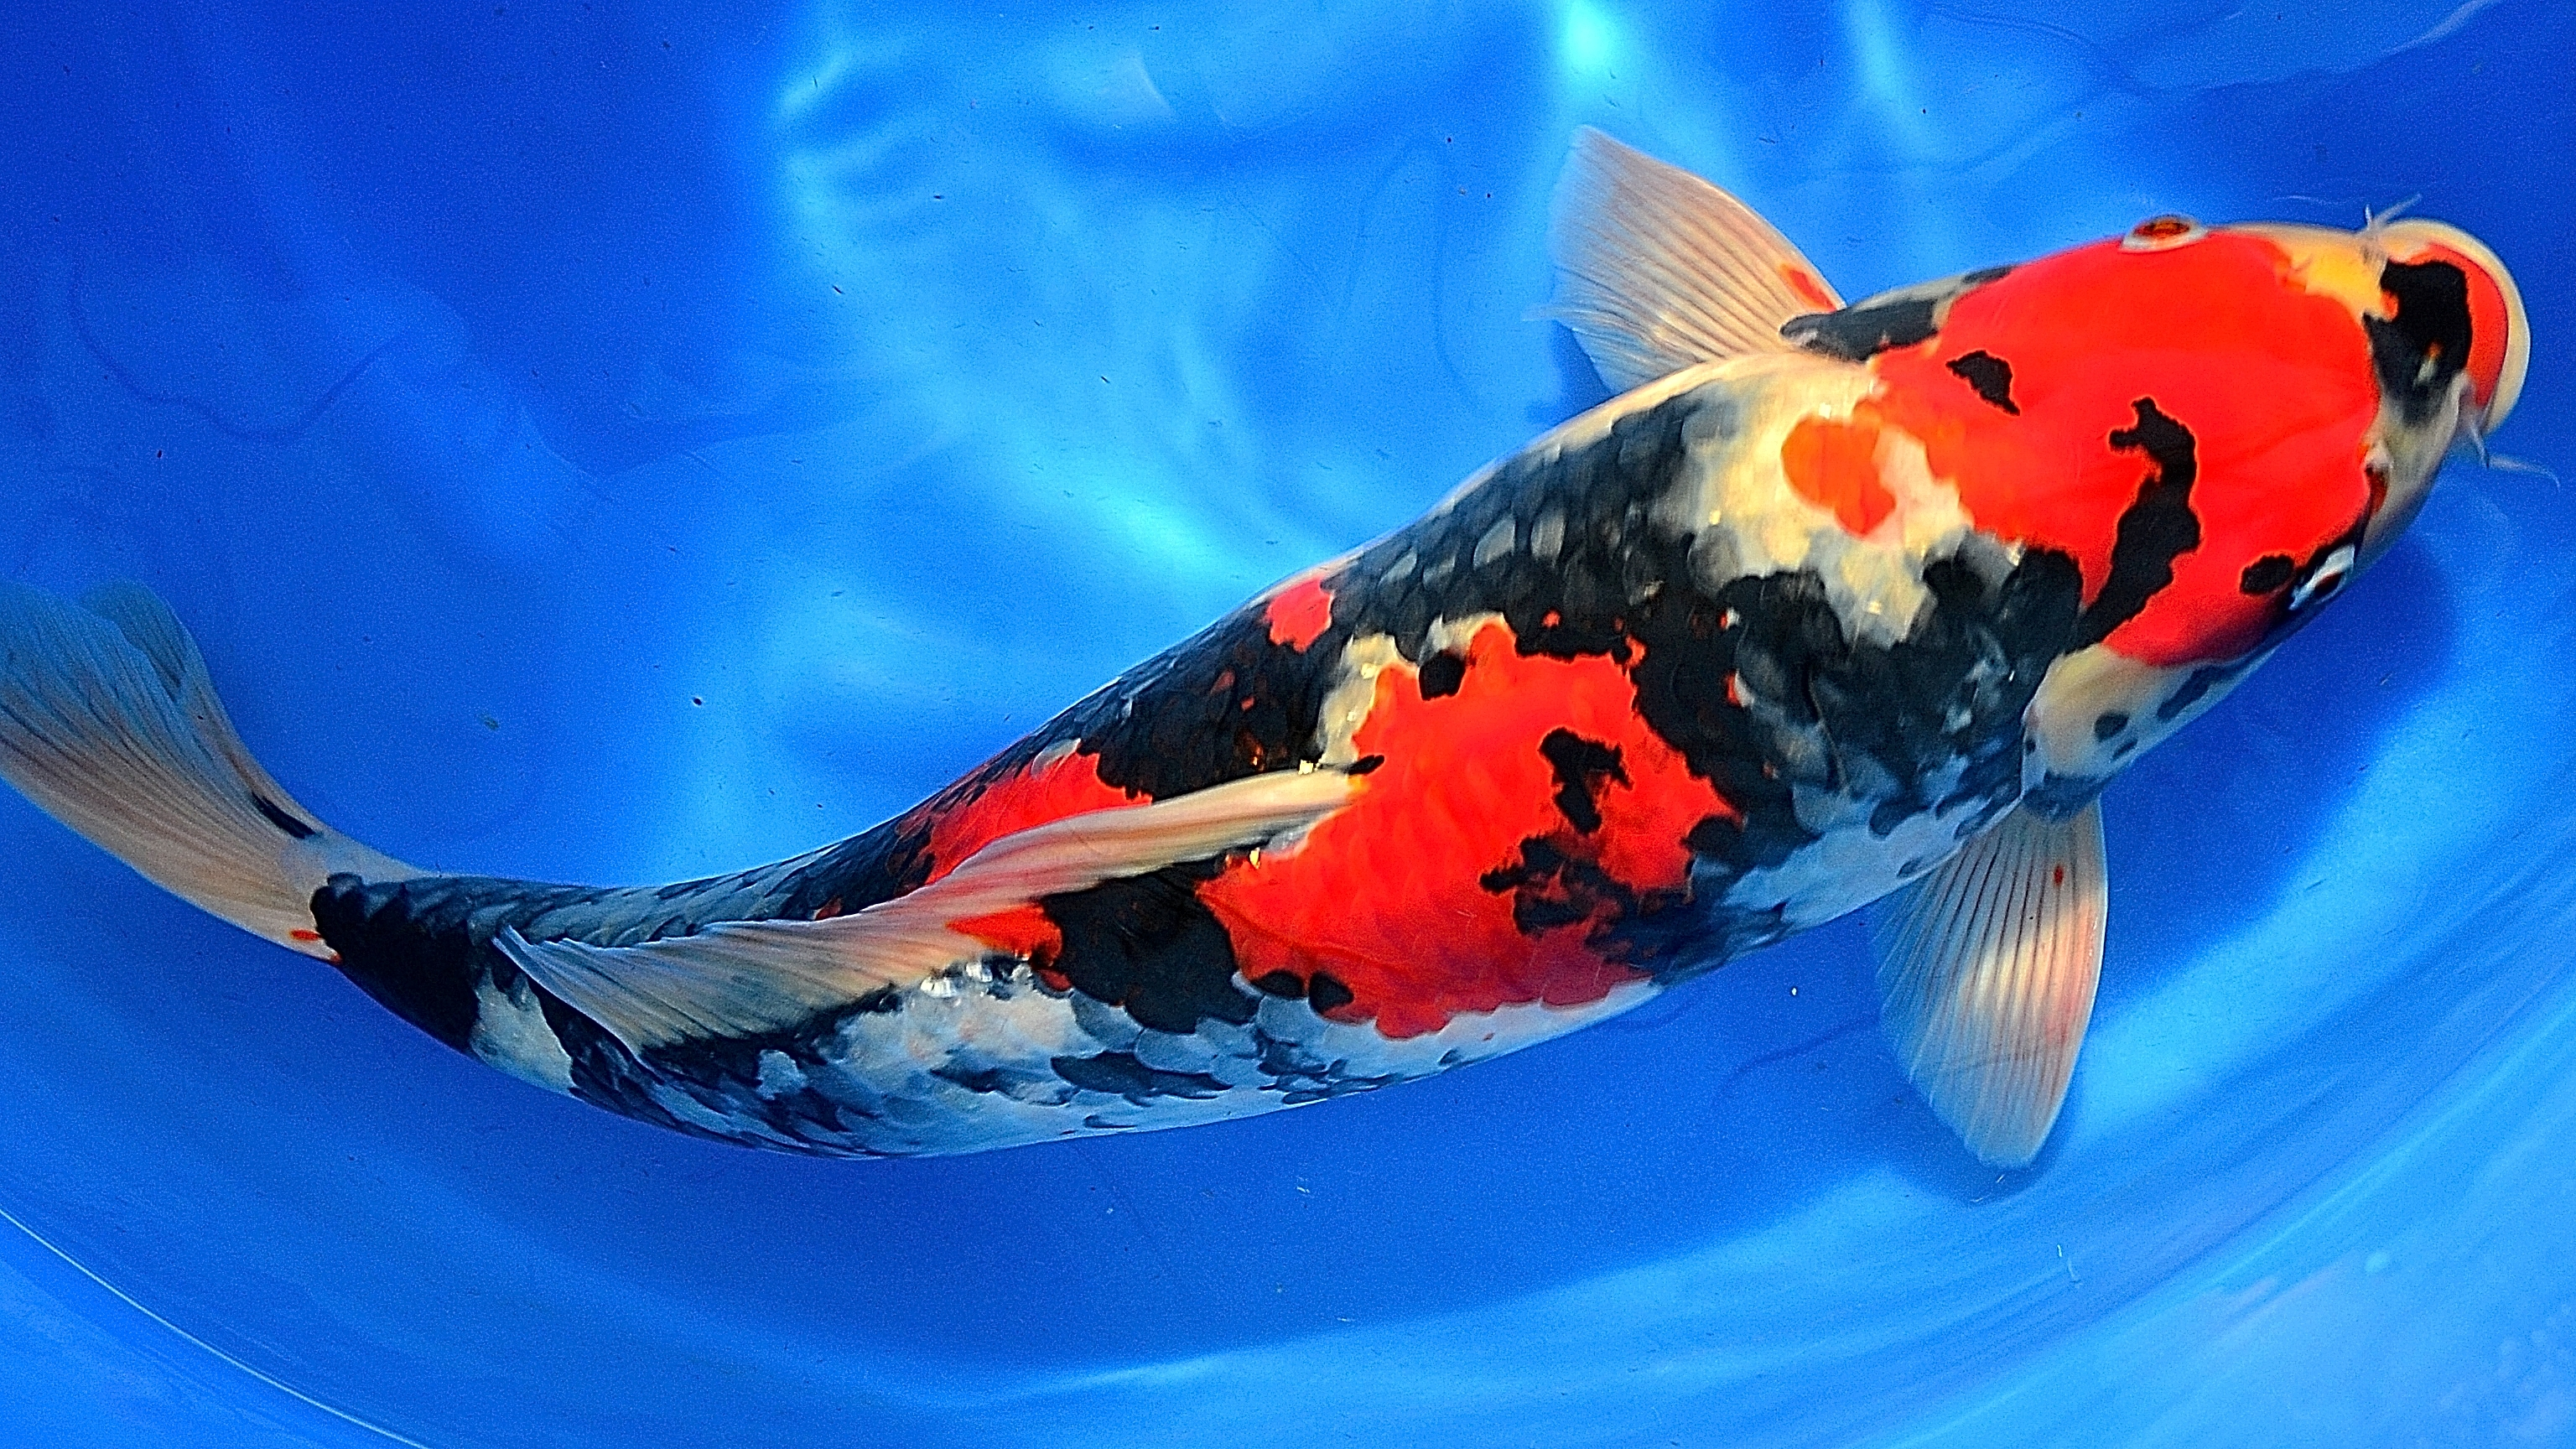 Mobile9 live wallpaper wallpapersafari for Koi fish images